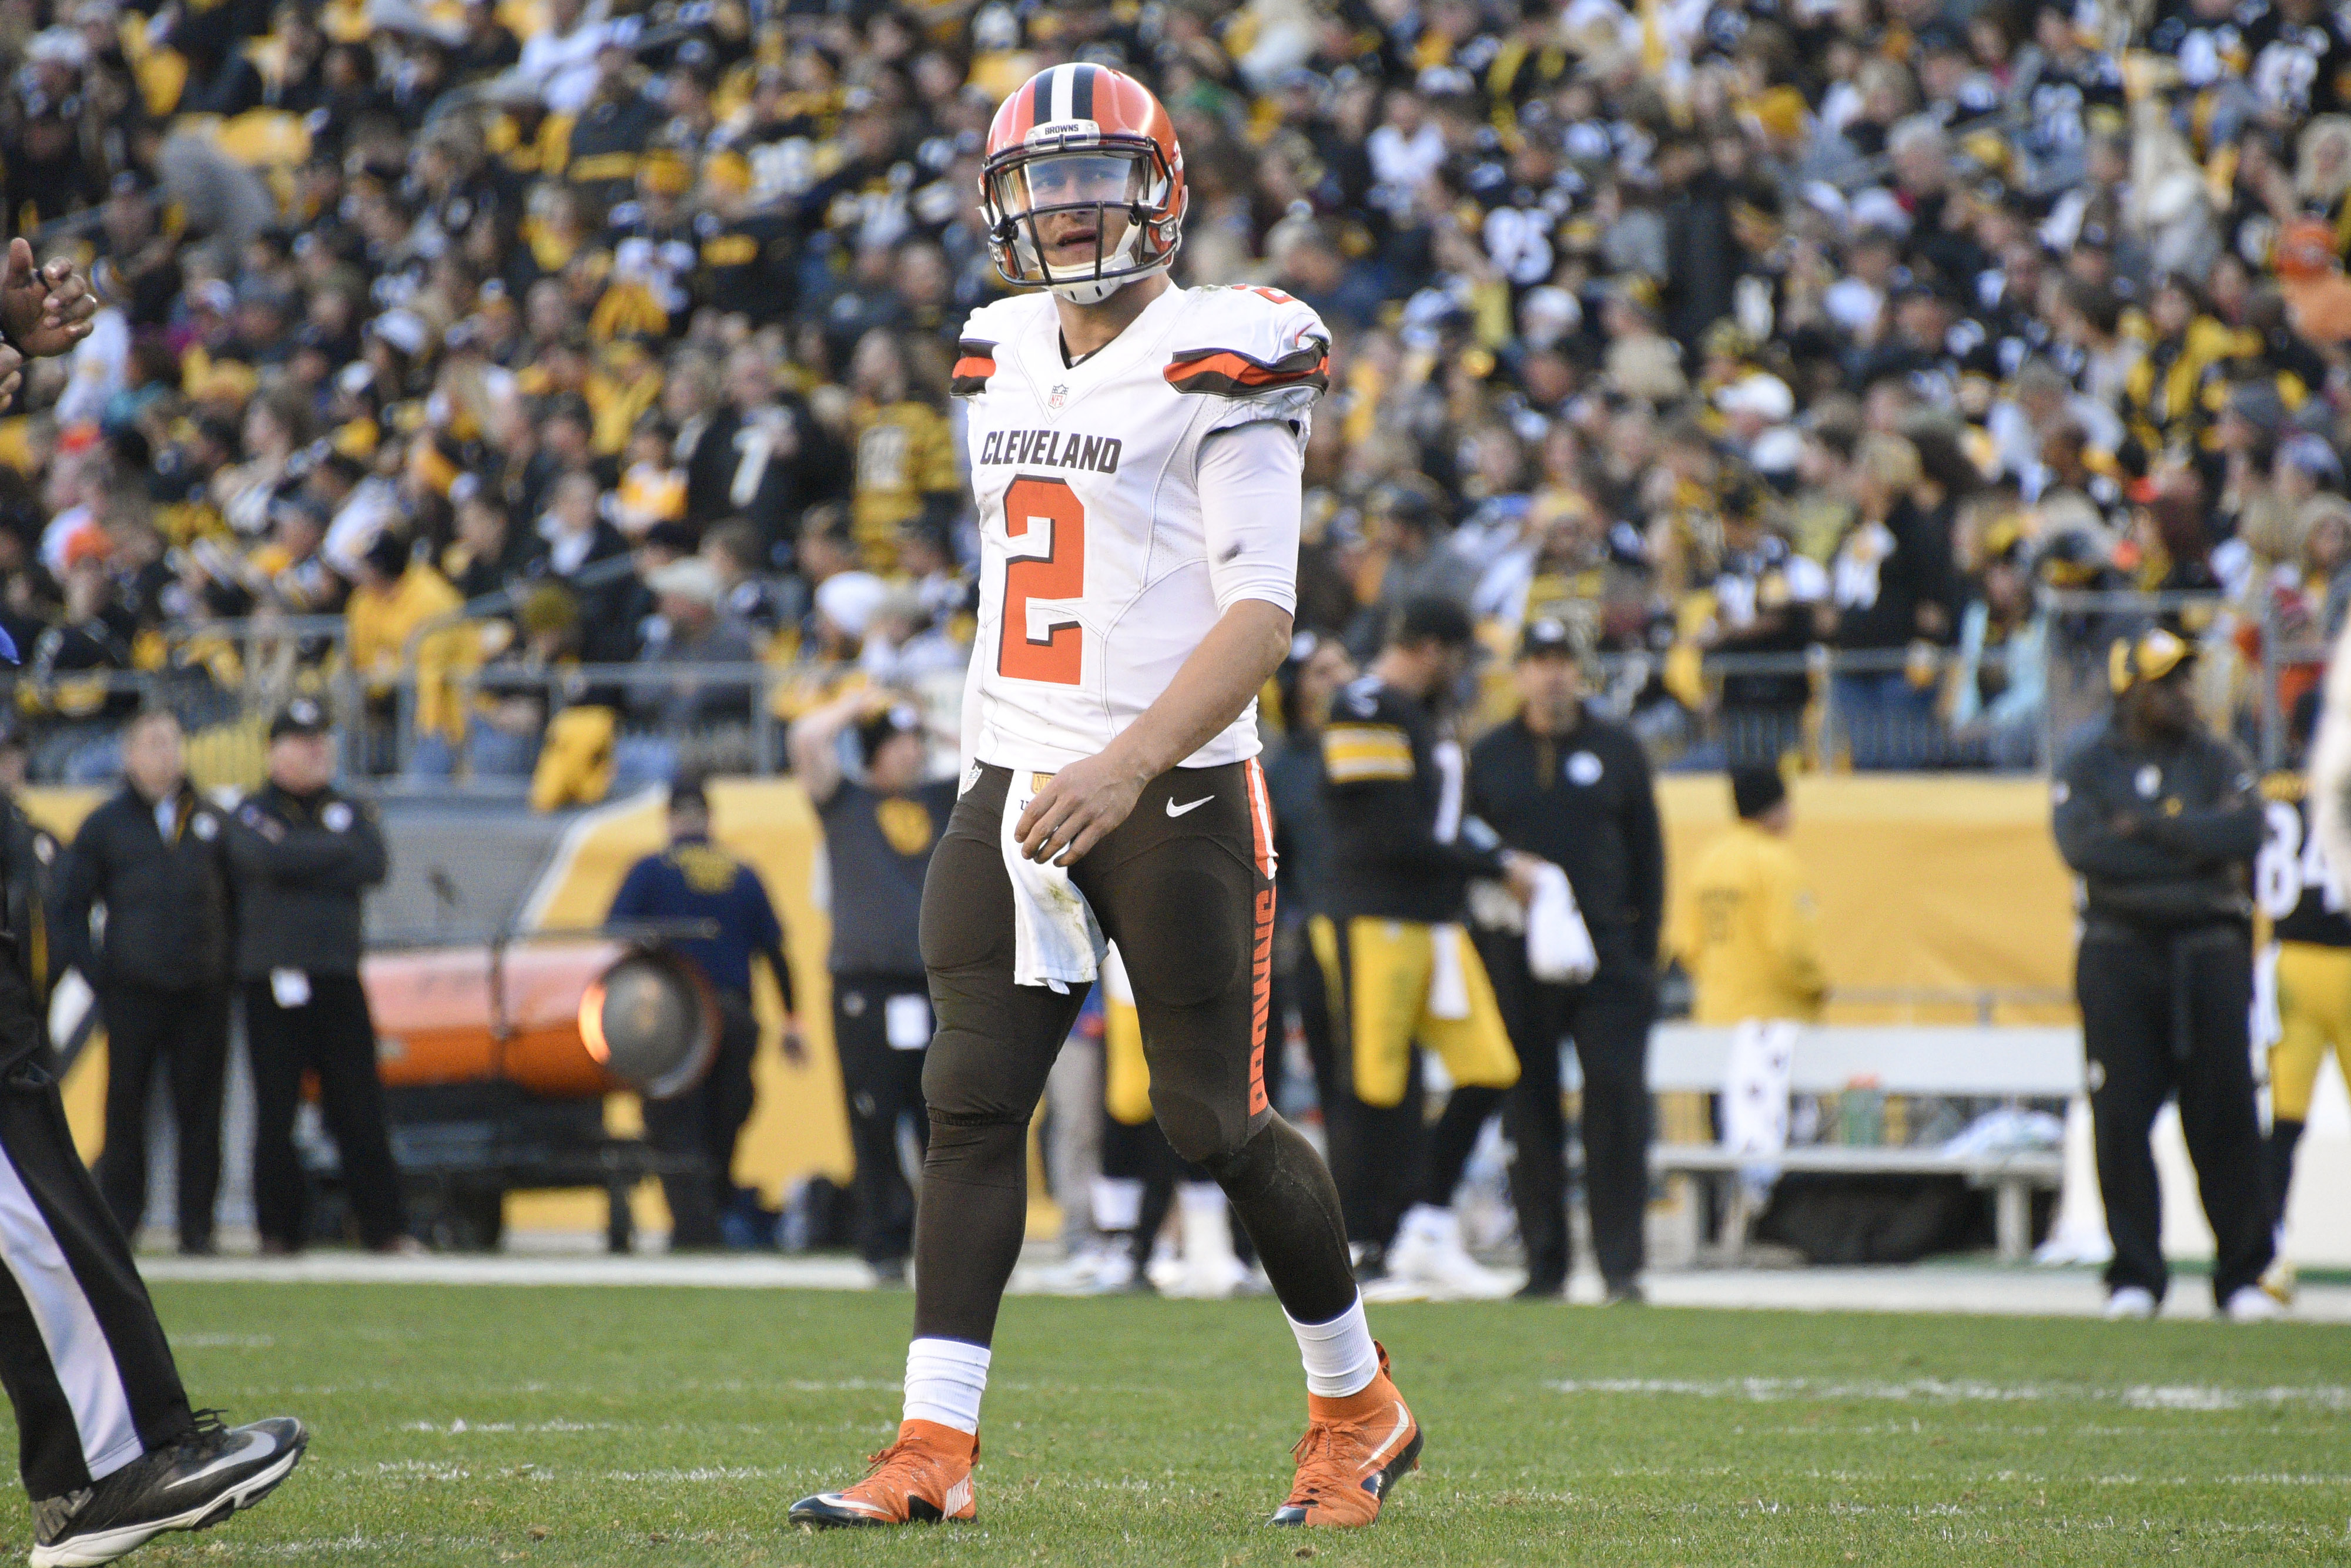 Cleveland Browns quarterback Johnny Manziel (2) walks off the field after a series of downs during the second half of an NFL football game against the Pittsburgh Steelers, Sunday, Nov. 15, 2015, in Pittsburgh. The Steelers won 30-9. (AP Photo/Don Wright)